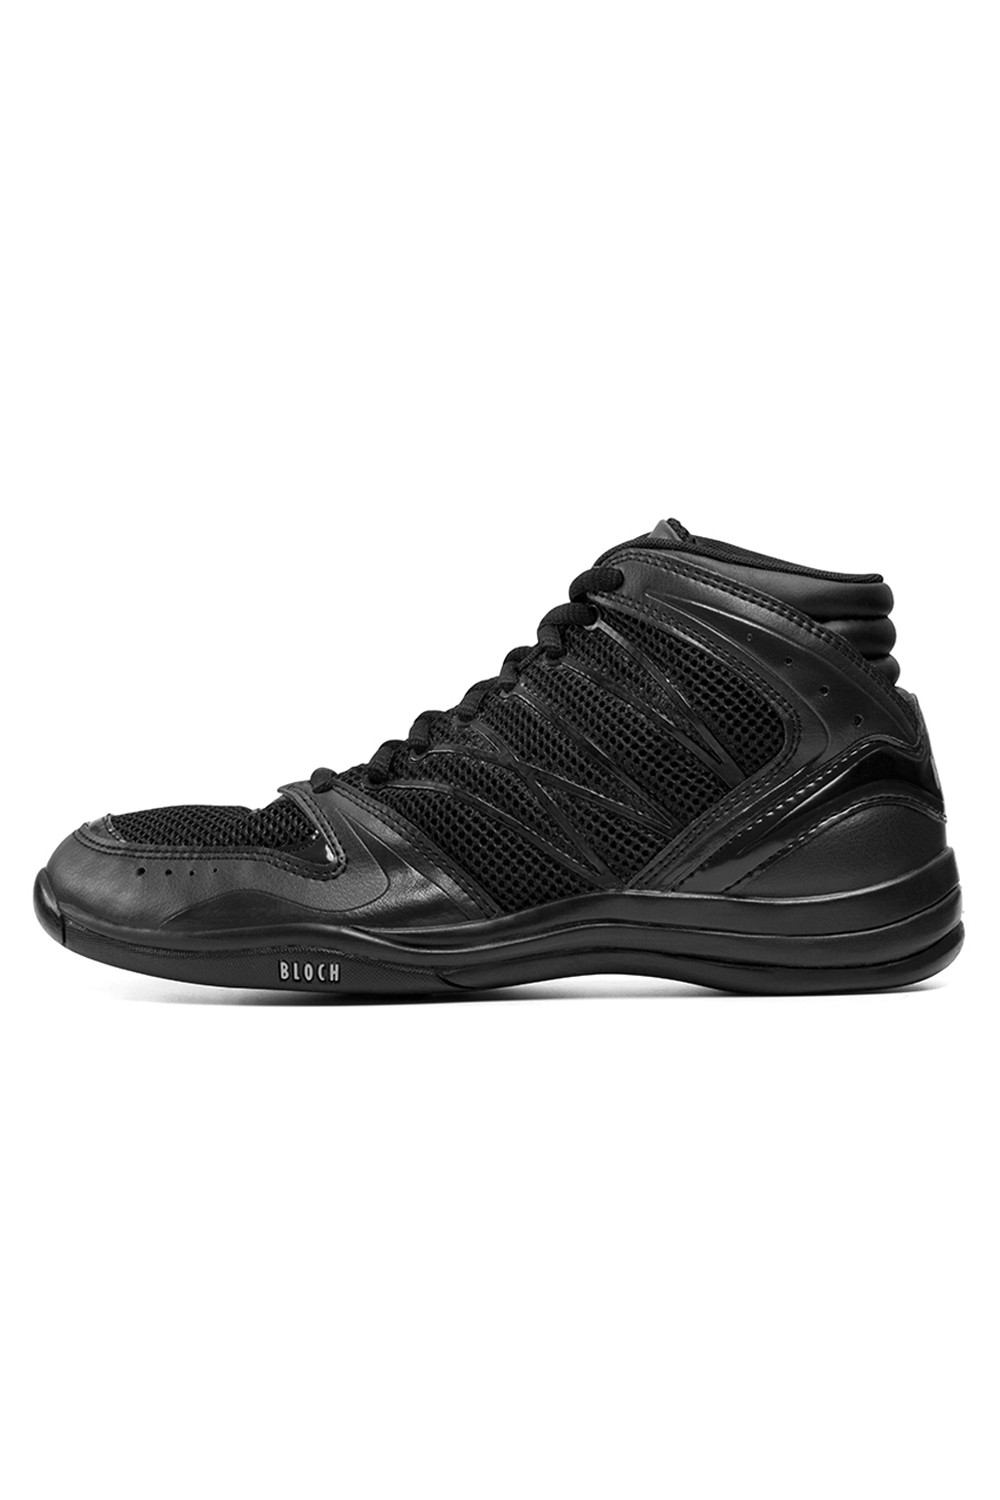 Apex Mid Women's Dance Sneakers